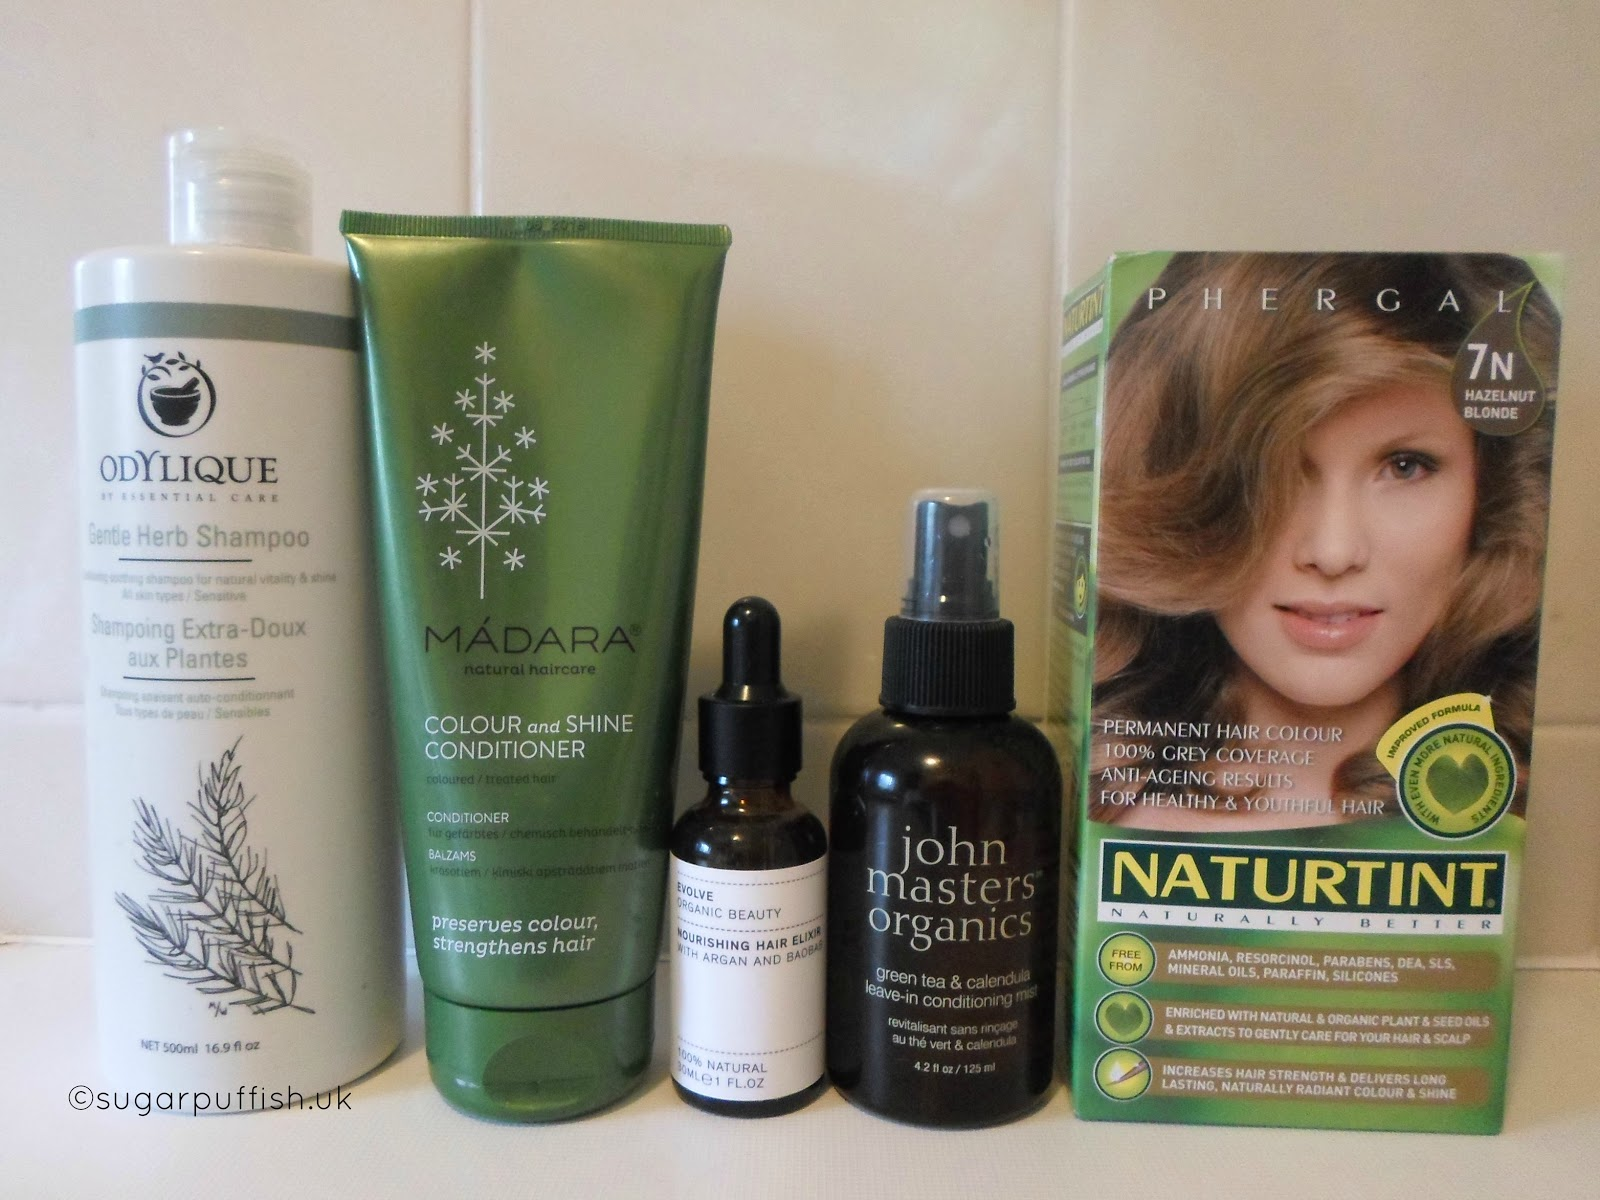 Natural and Organic Haircare Routine 2017 featuring Madara, Odylique, Evolve Organic Beauty, John Masters